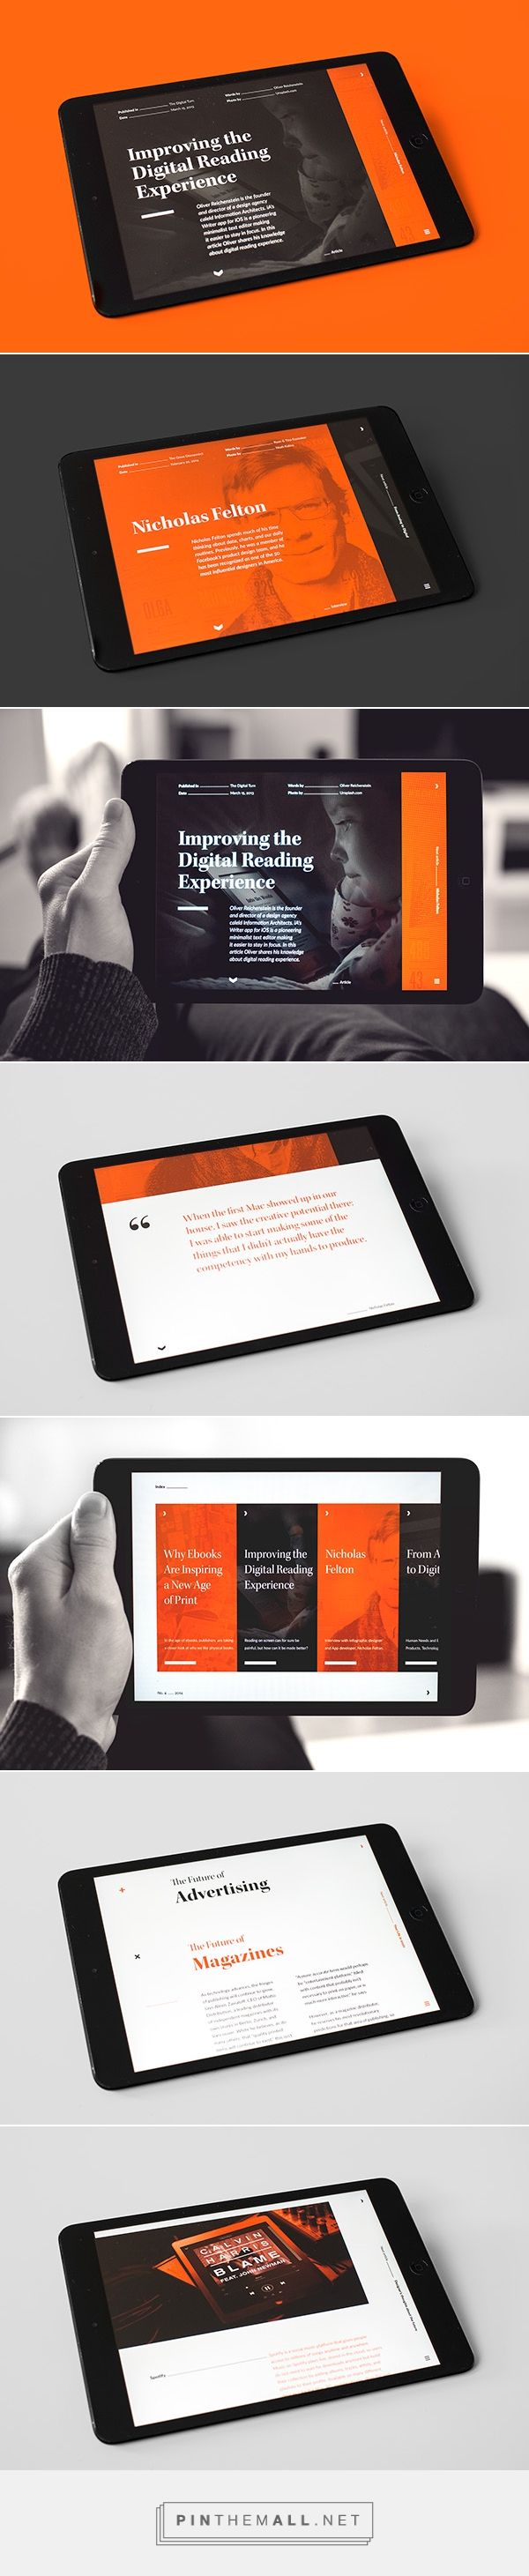 Tekstoppsettet -  Verso – Digital Magazine | Abduzeedo Design Inspiration - created via http://pinthemall.net